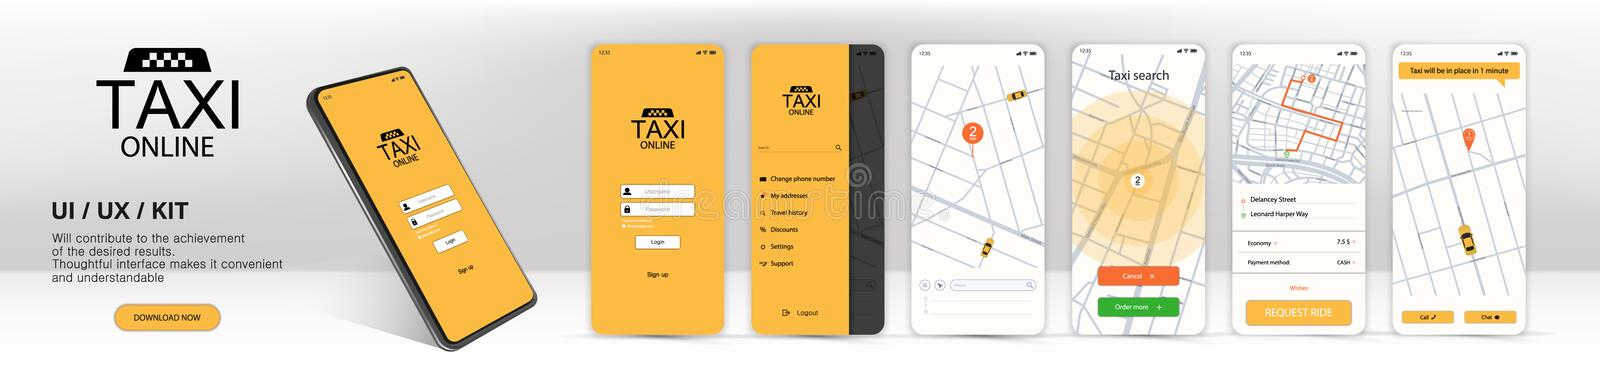 Call a taxi online, mobile application. UI, UX, KIT Application vector illustration